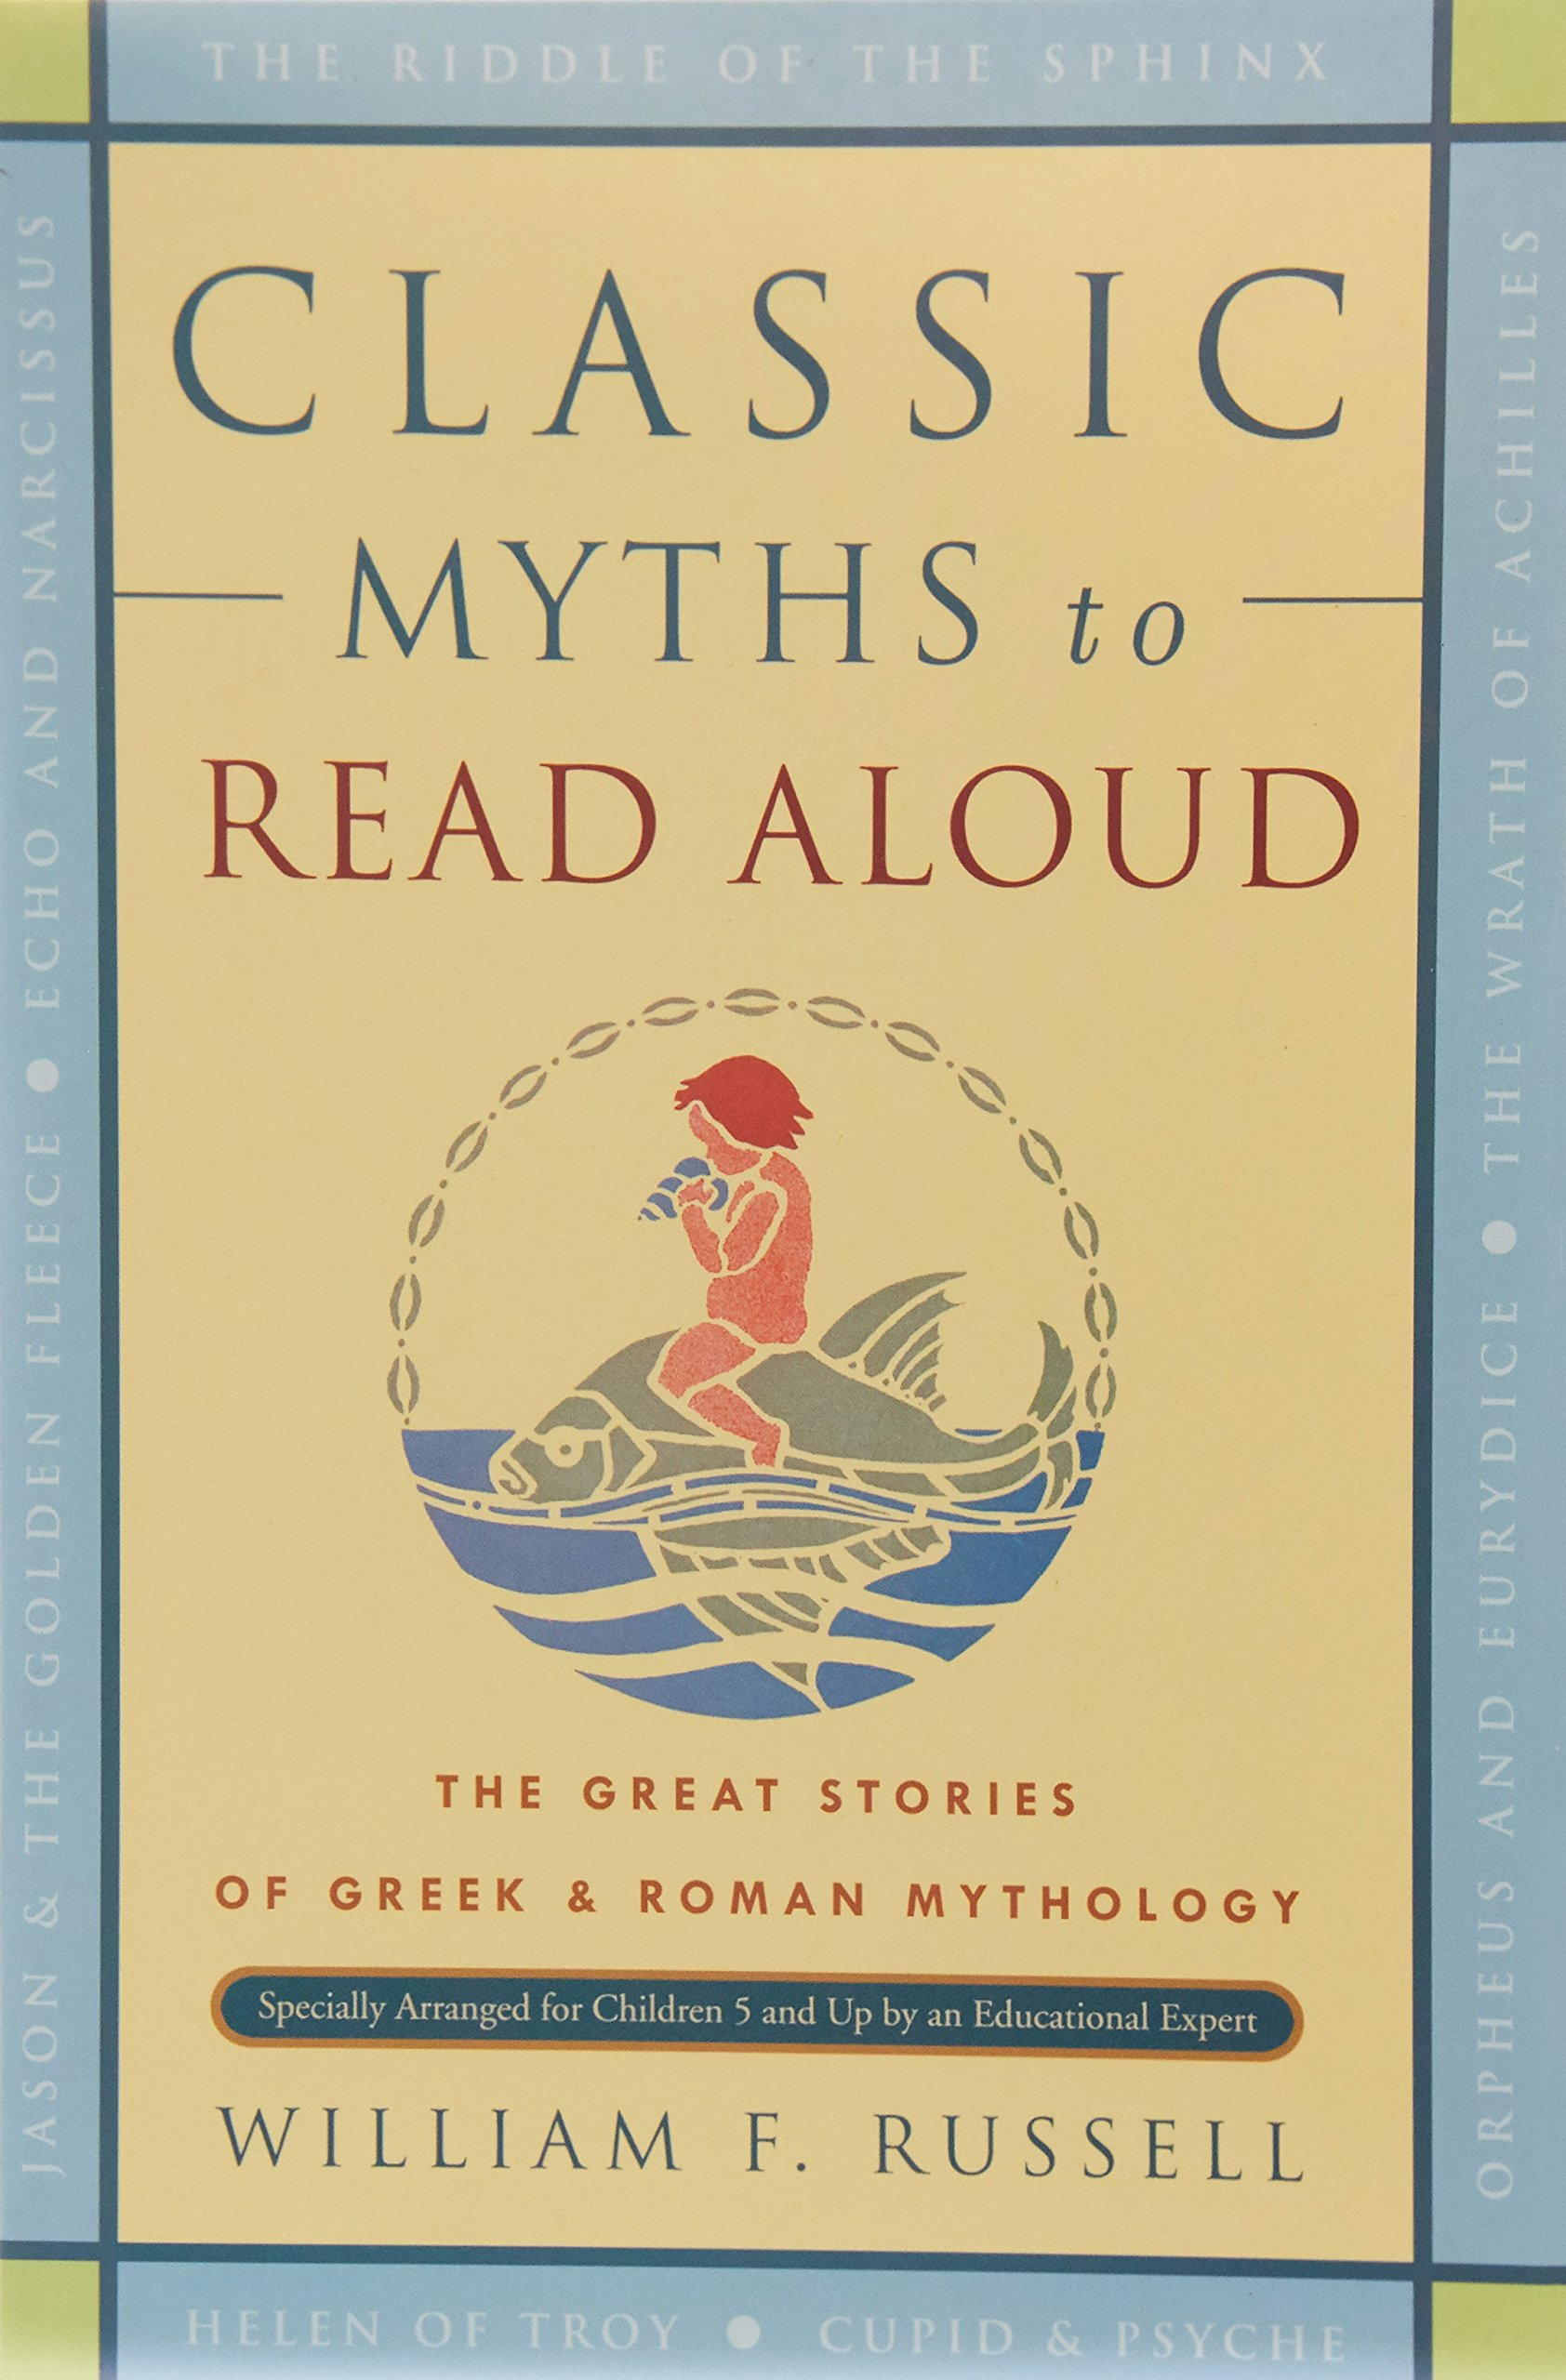 Classic myths to read aloud the great stories of greek and roman classic myths to read aloud the great stories of greek and roman mythology specially arranged for children five and up by an educational expert william fandeluxe Choice Image